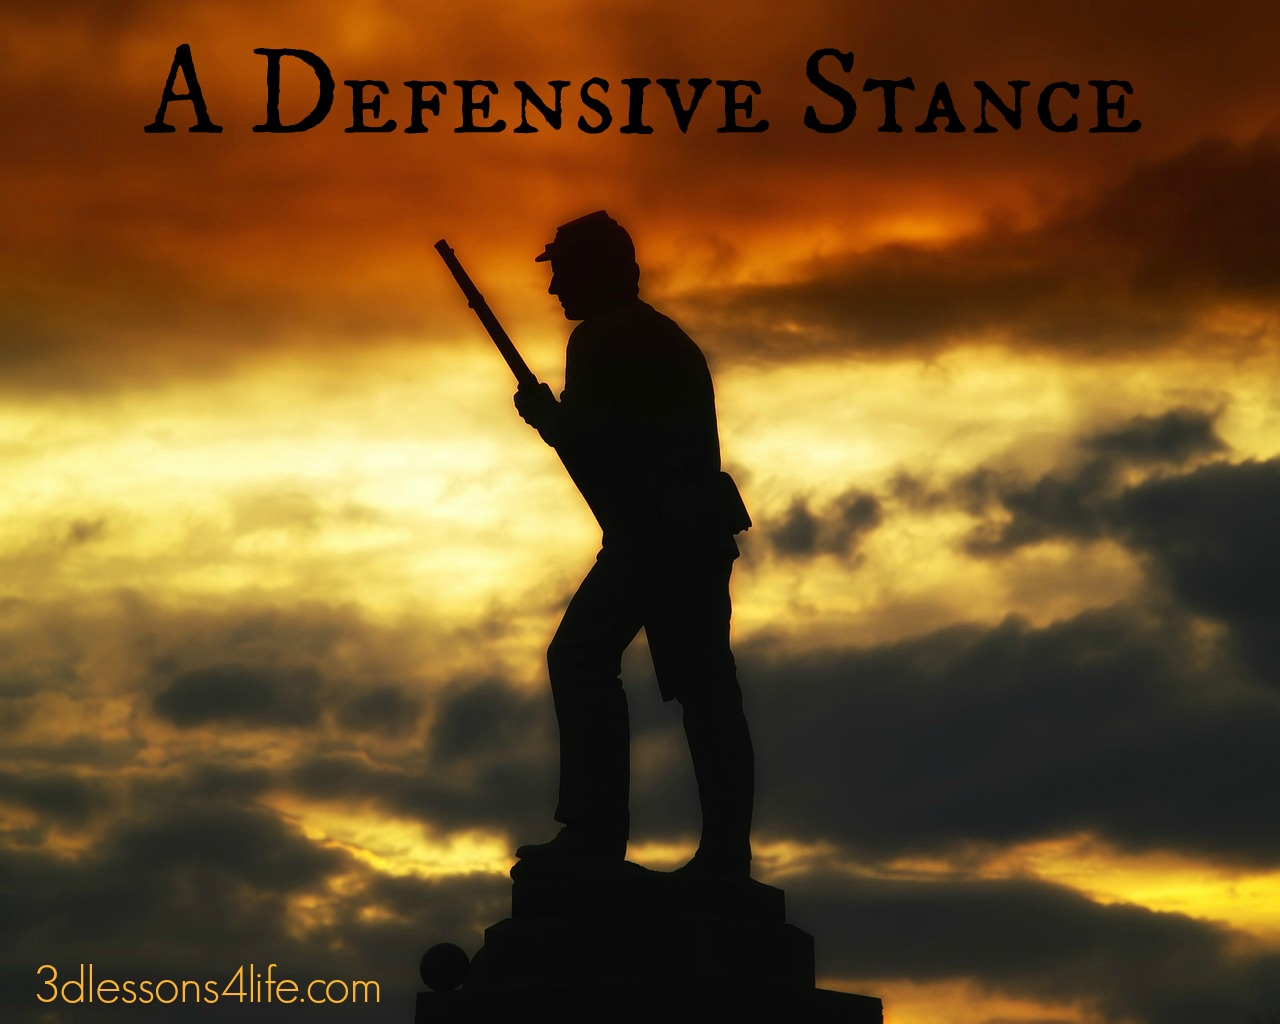 A Defensive Stance